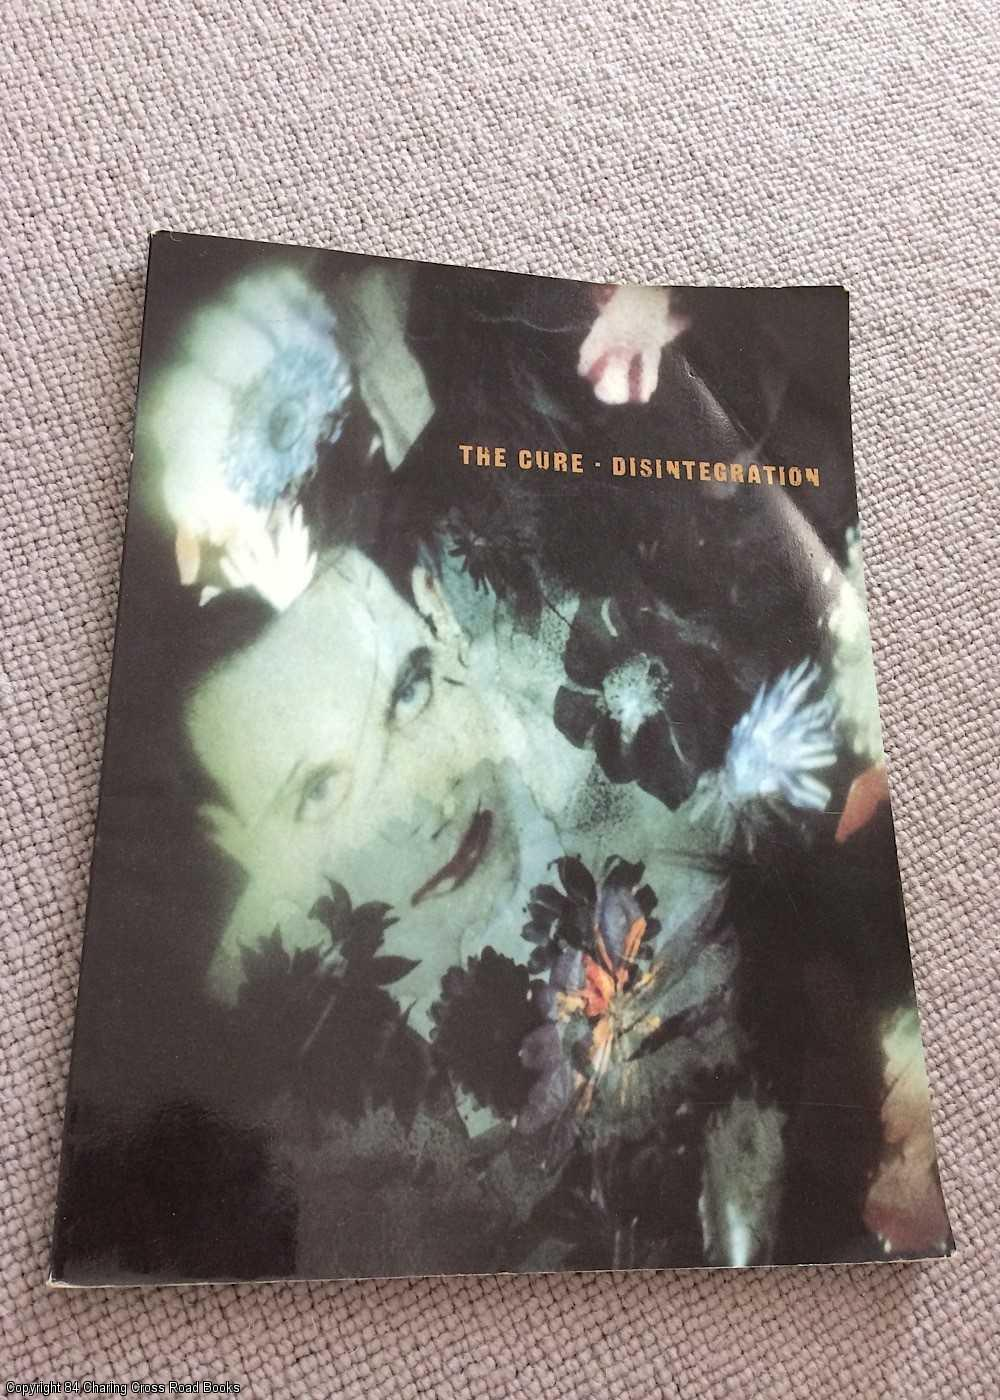 THE CURE - The Cure: Disintegration